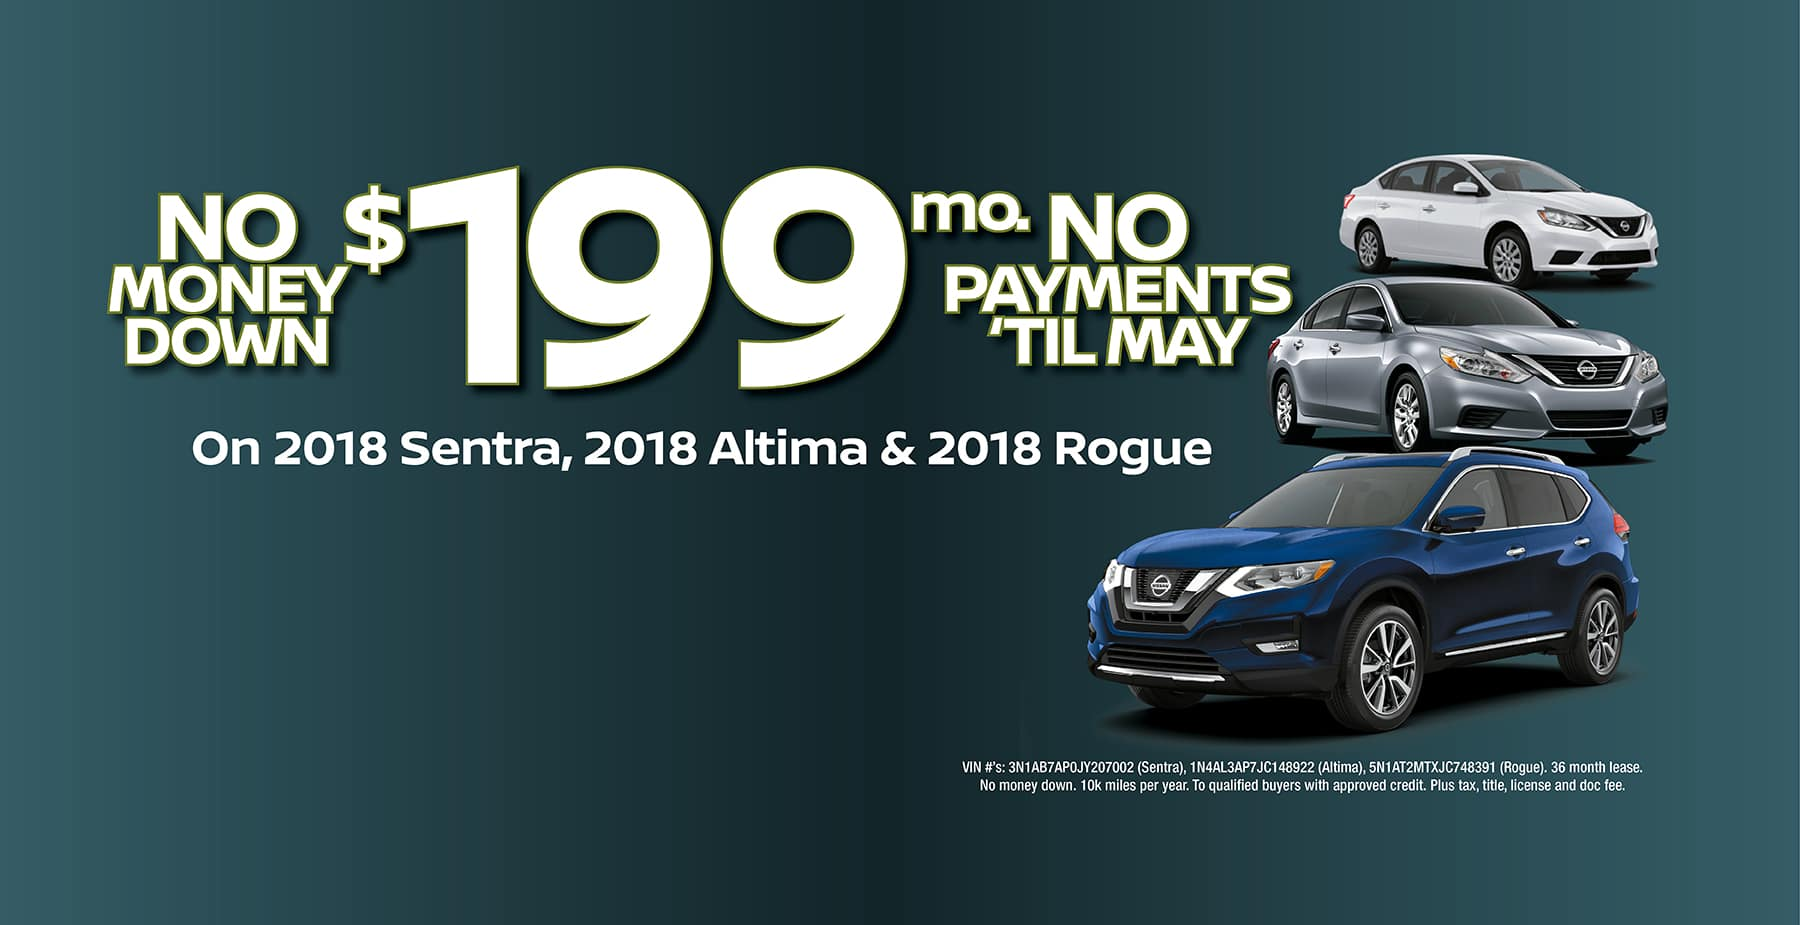 Take your pick! 2018 Nissan Altima, Sentra, or Rogue for $199 a month with No Money Down at Star Nissan!